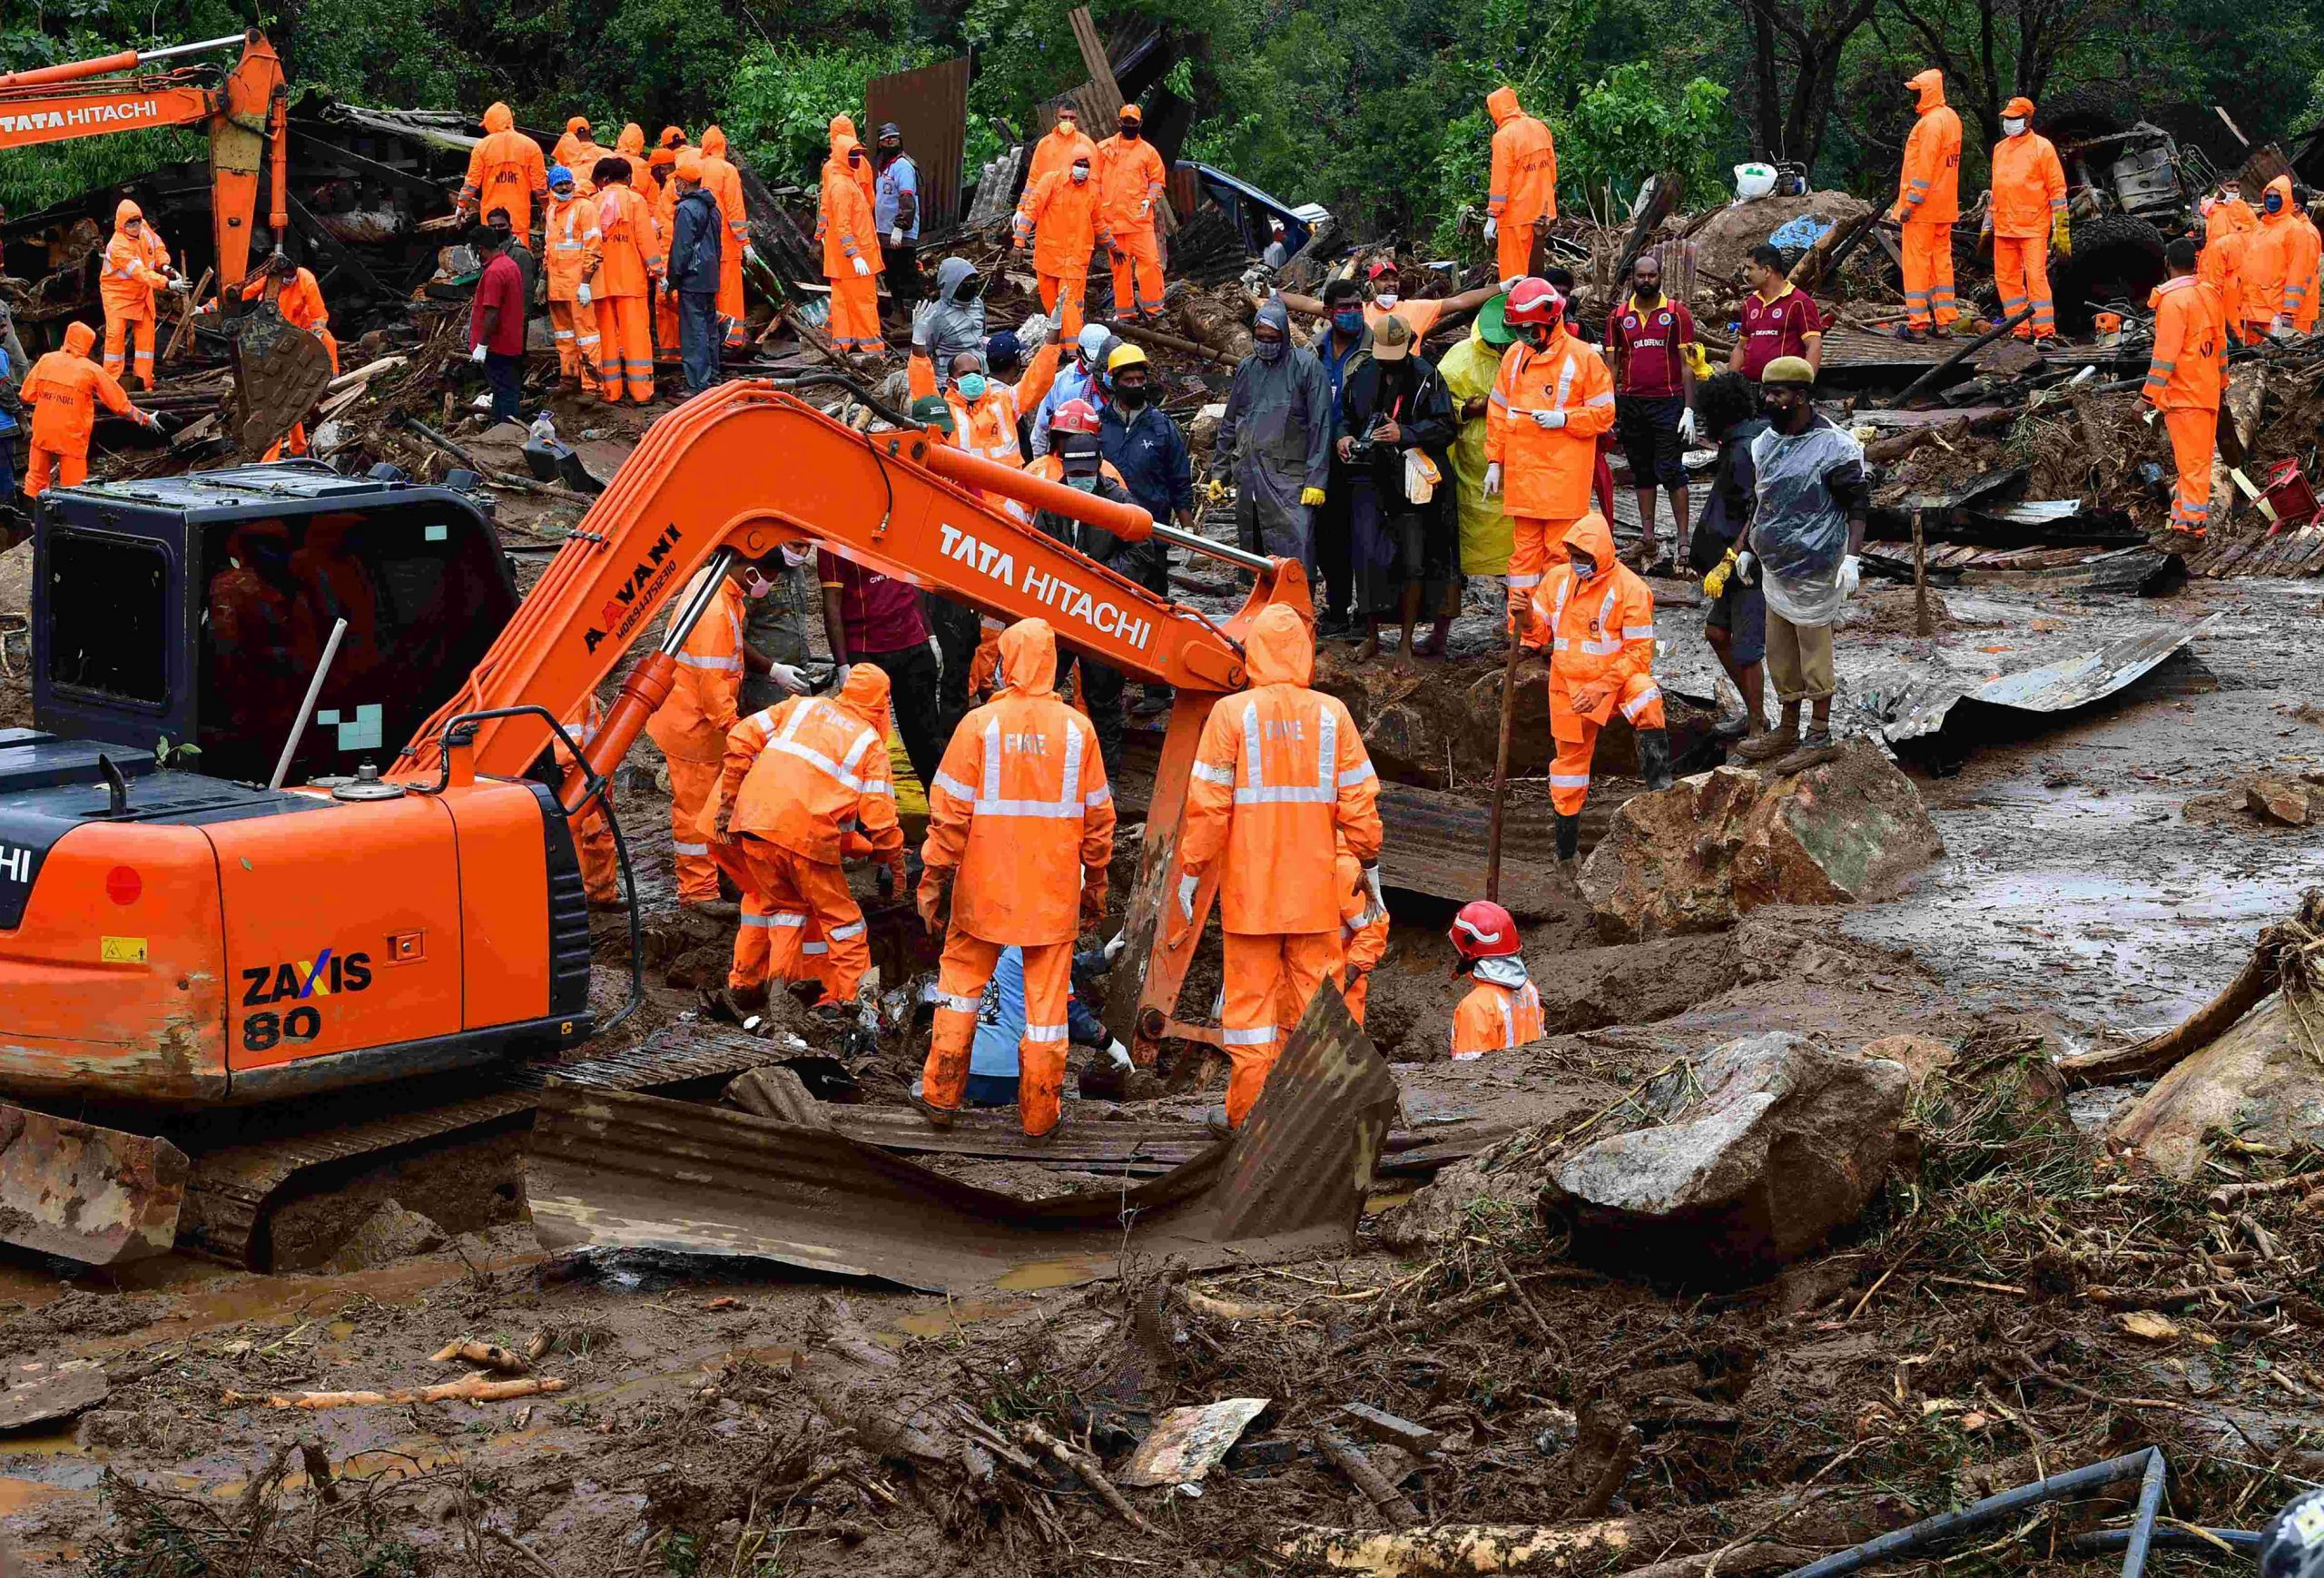 Rescue workers search for missing people at a landslide site caused by heavy rains in Pettimudy, in Kerala state, on August 8, 2020. (Photo by STR / AFP)